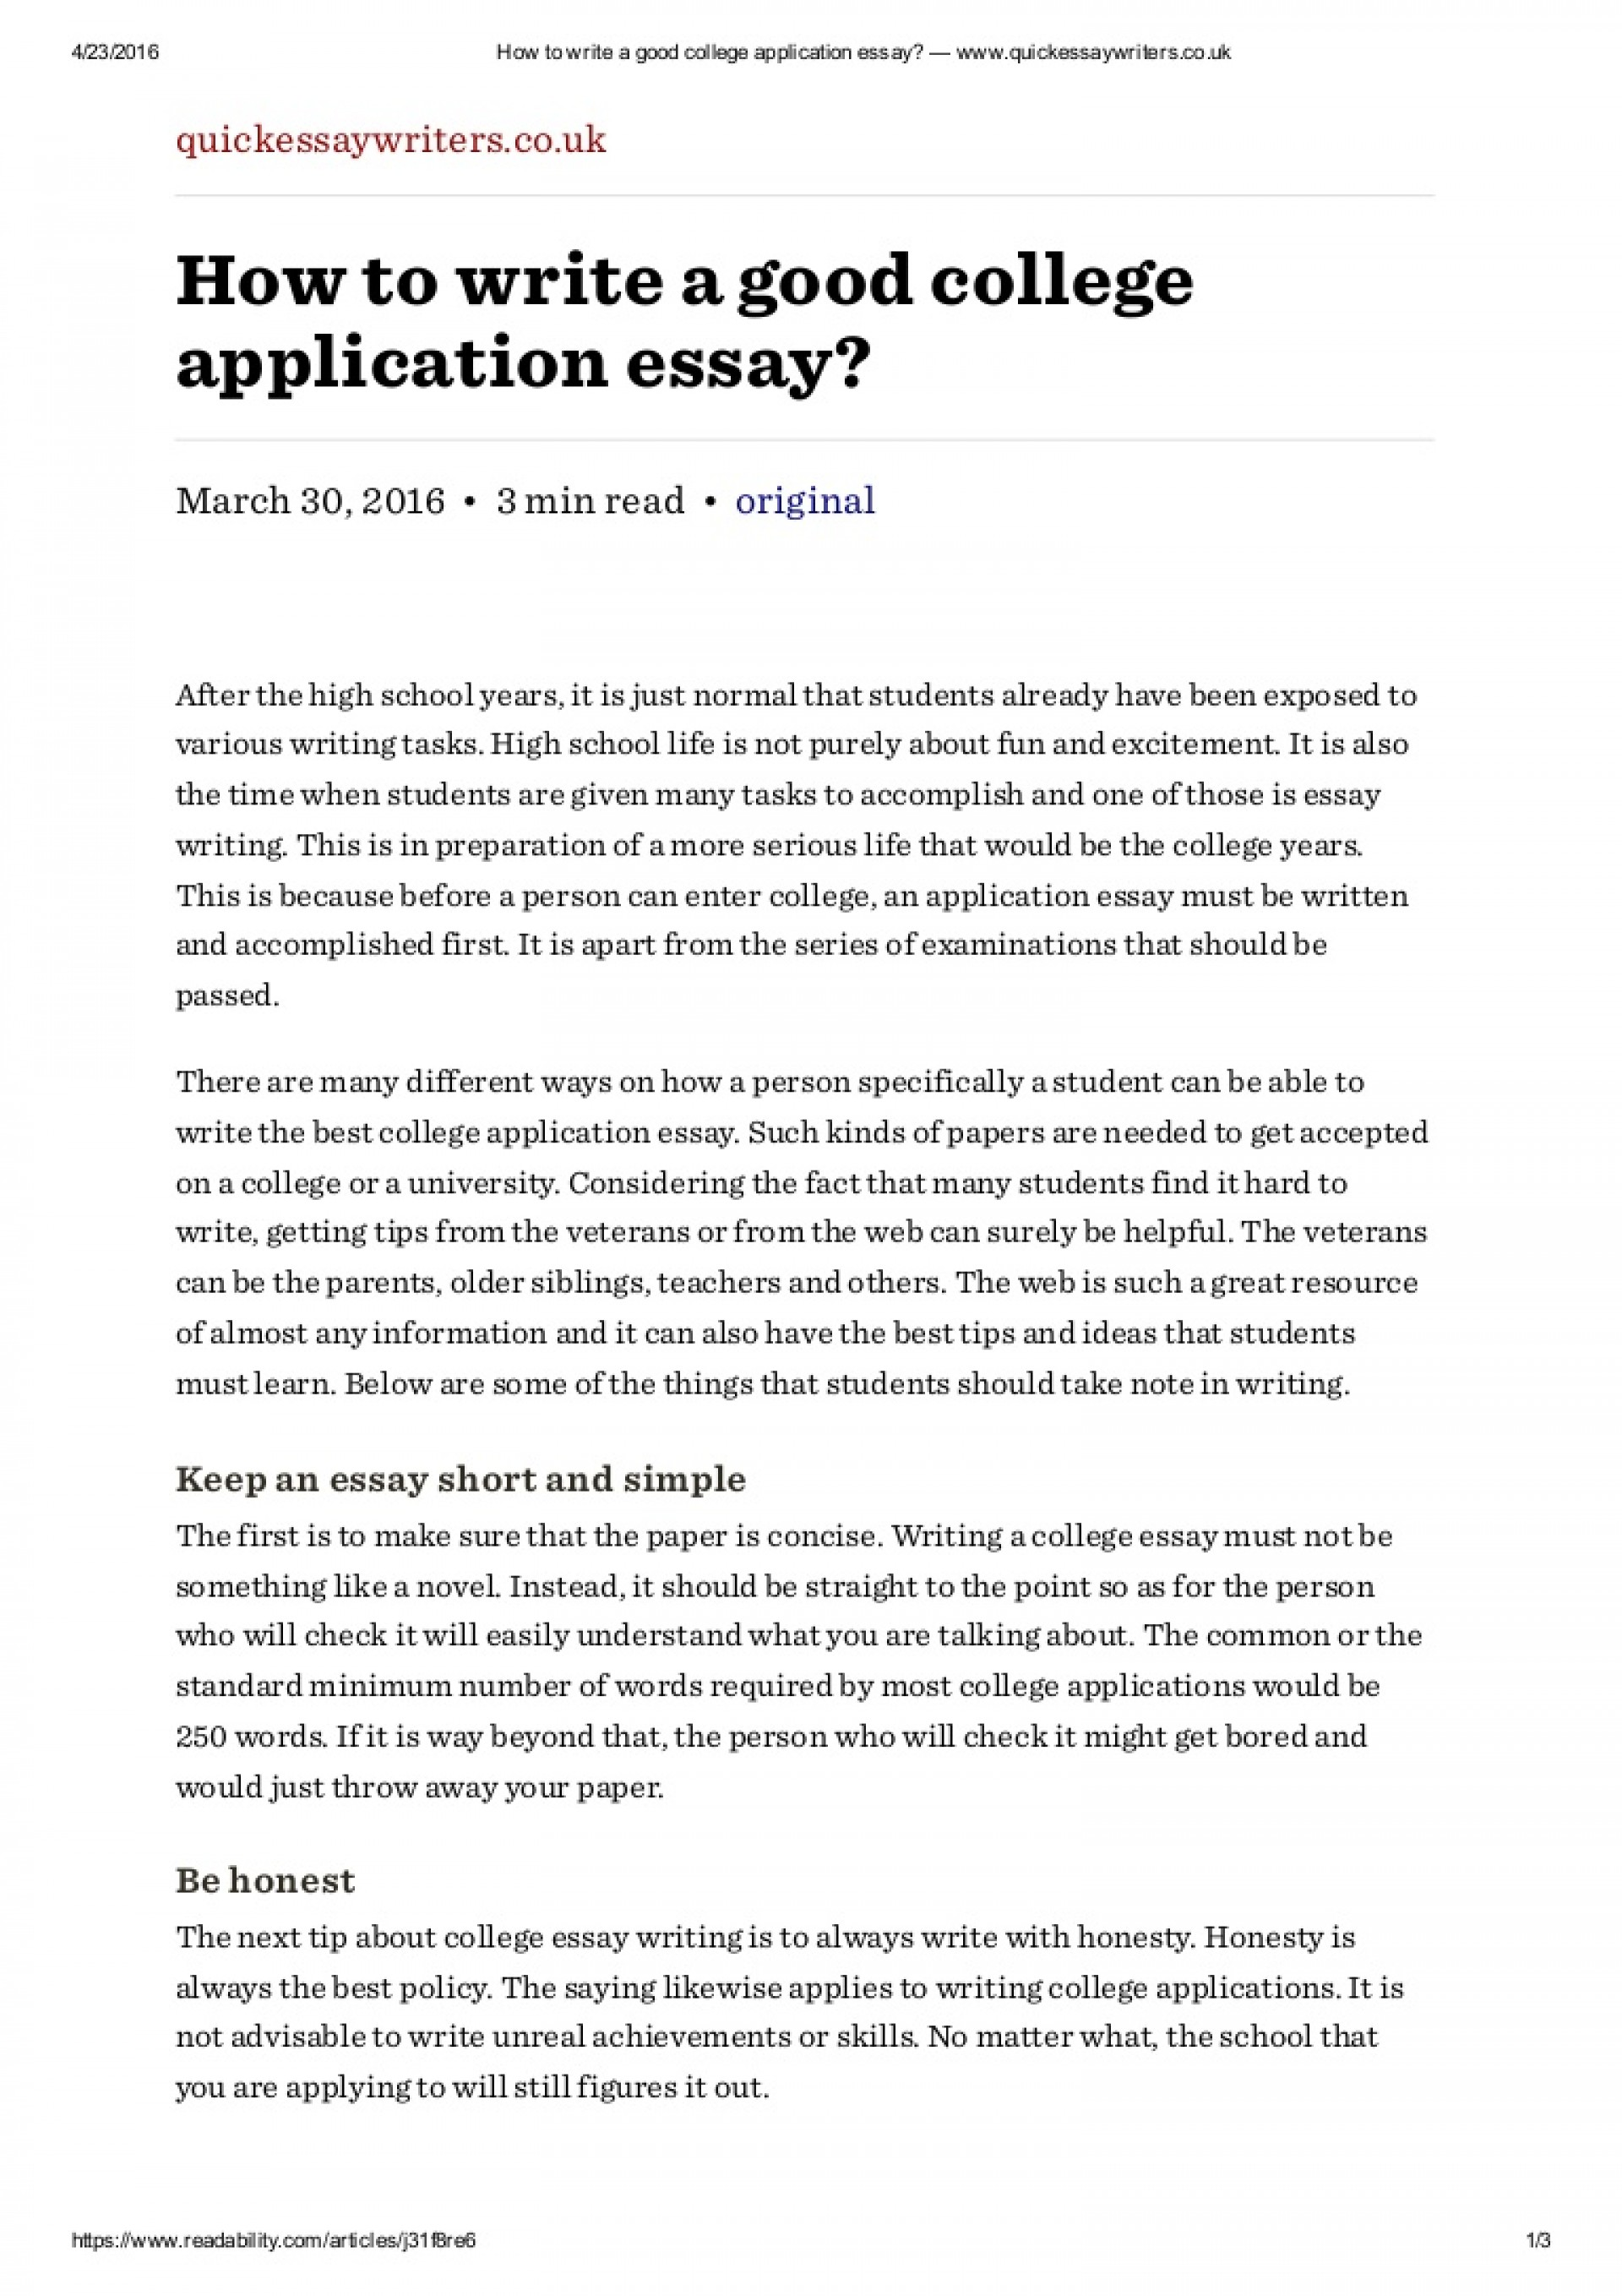 009 Howtowriteagoodcollegeapplicationessaywww Thumbnail Essay Example Writing College Rare A Application How To Write That Stands Out About Yourself Examples Of Uc Essays 1920